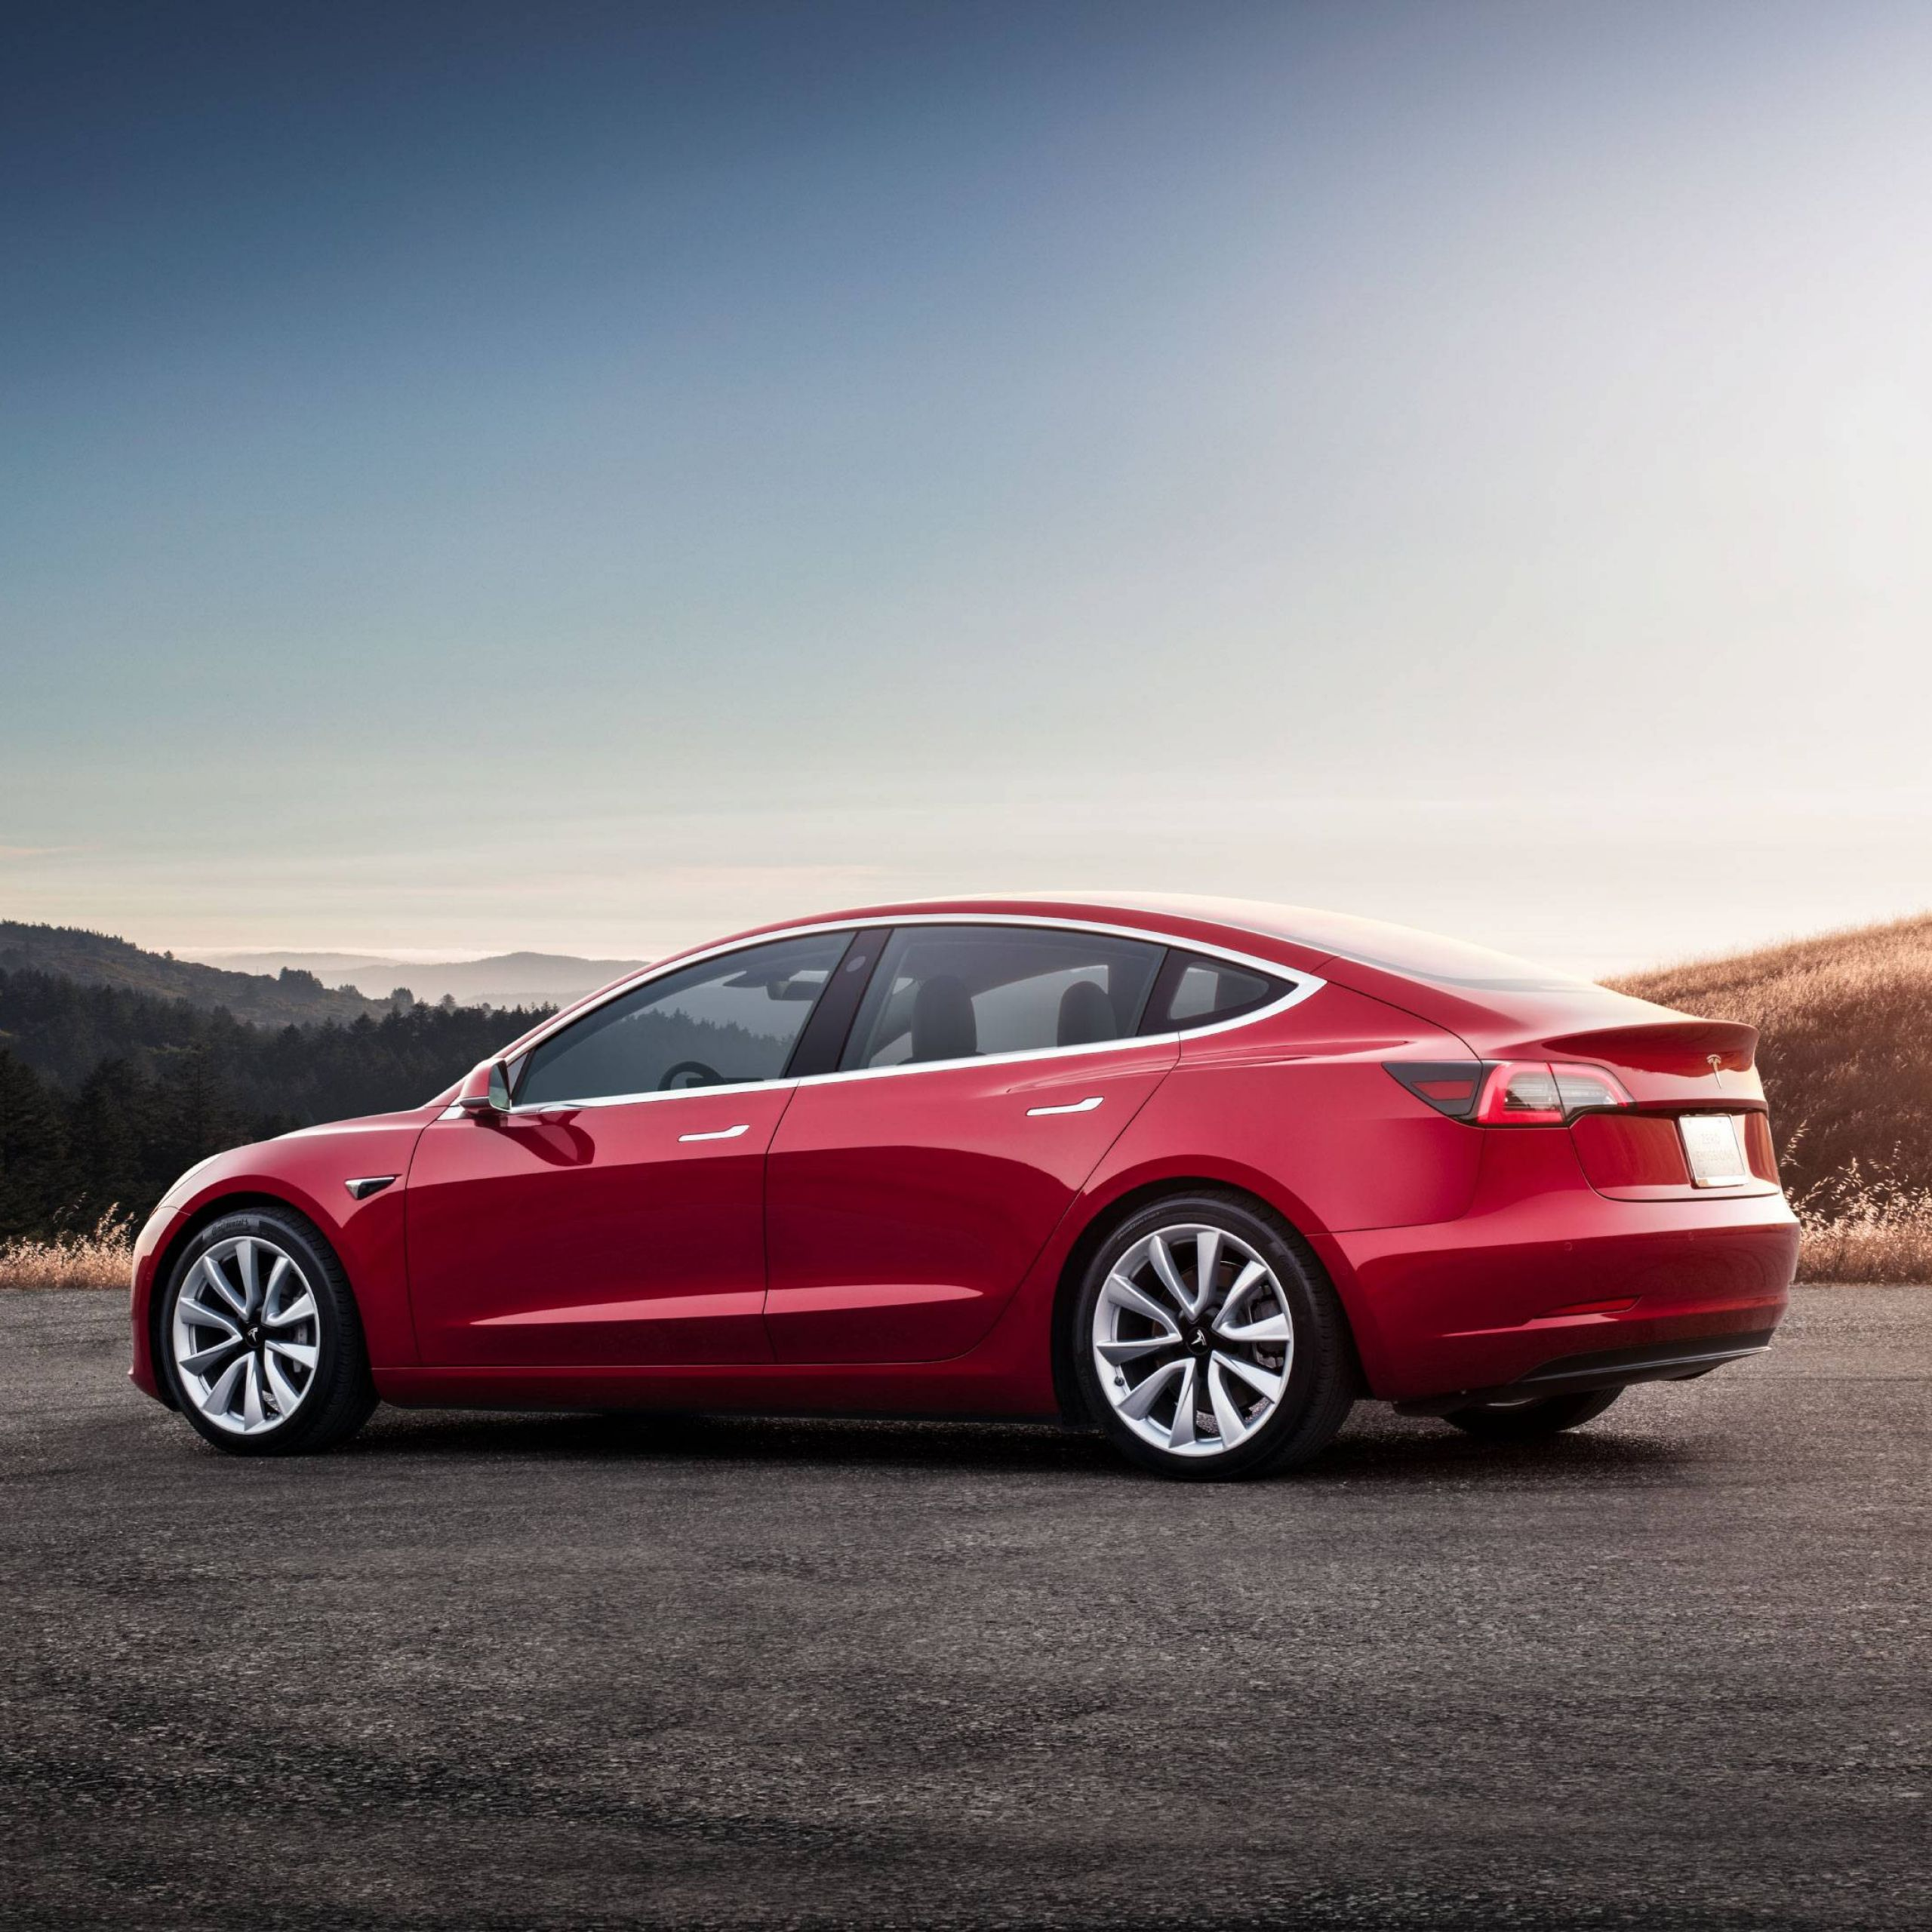 Tesla Online Store Fresh Tesla Model 3 Review Worth the Wait but Not so Cheap after